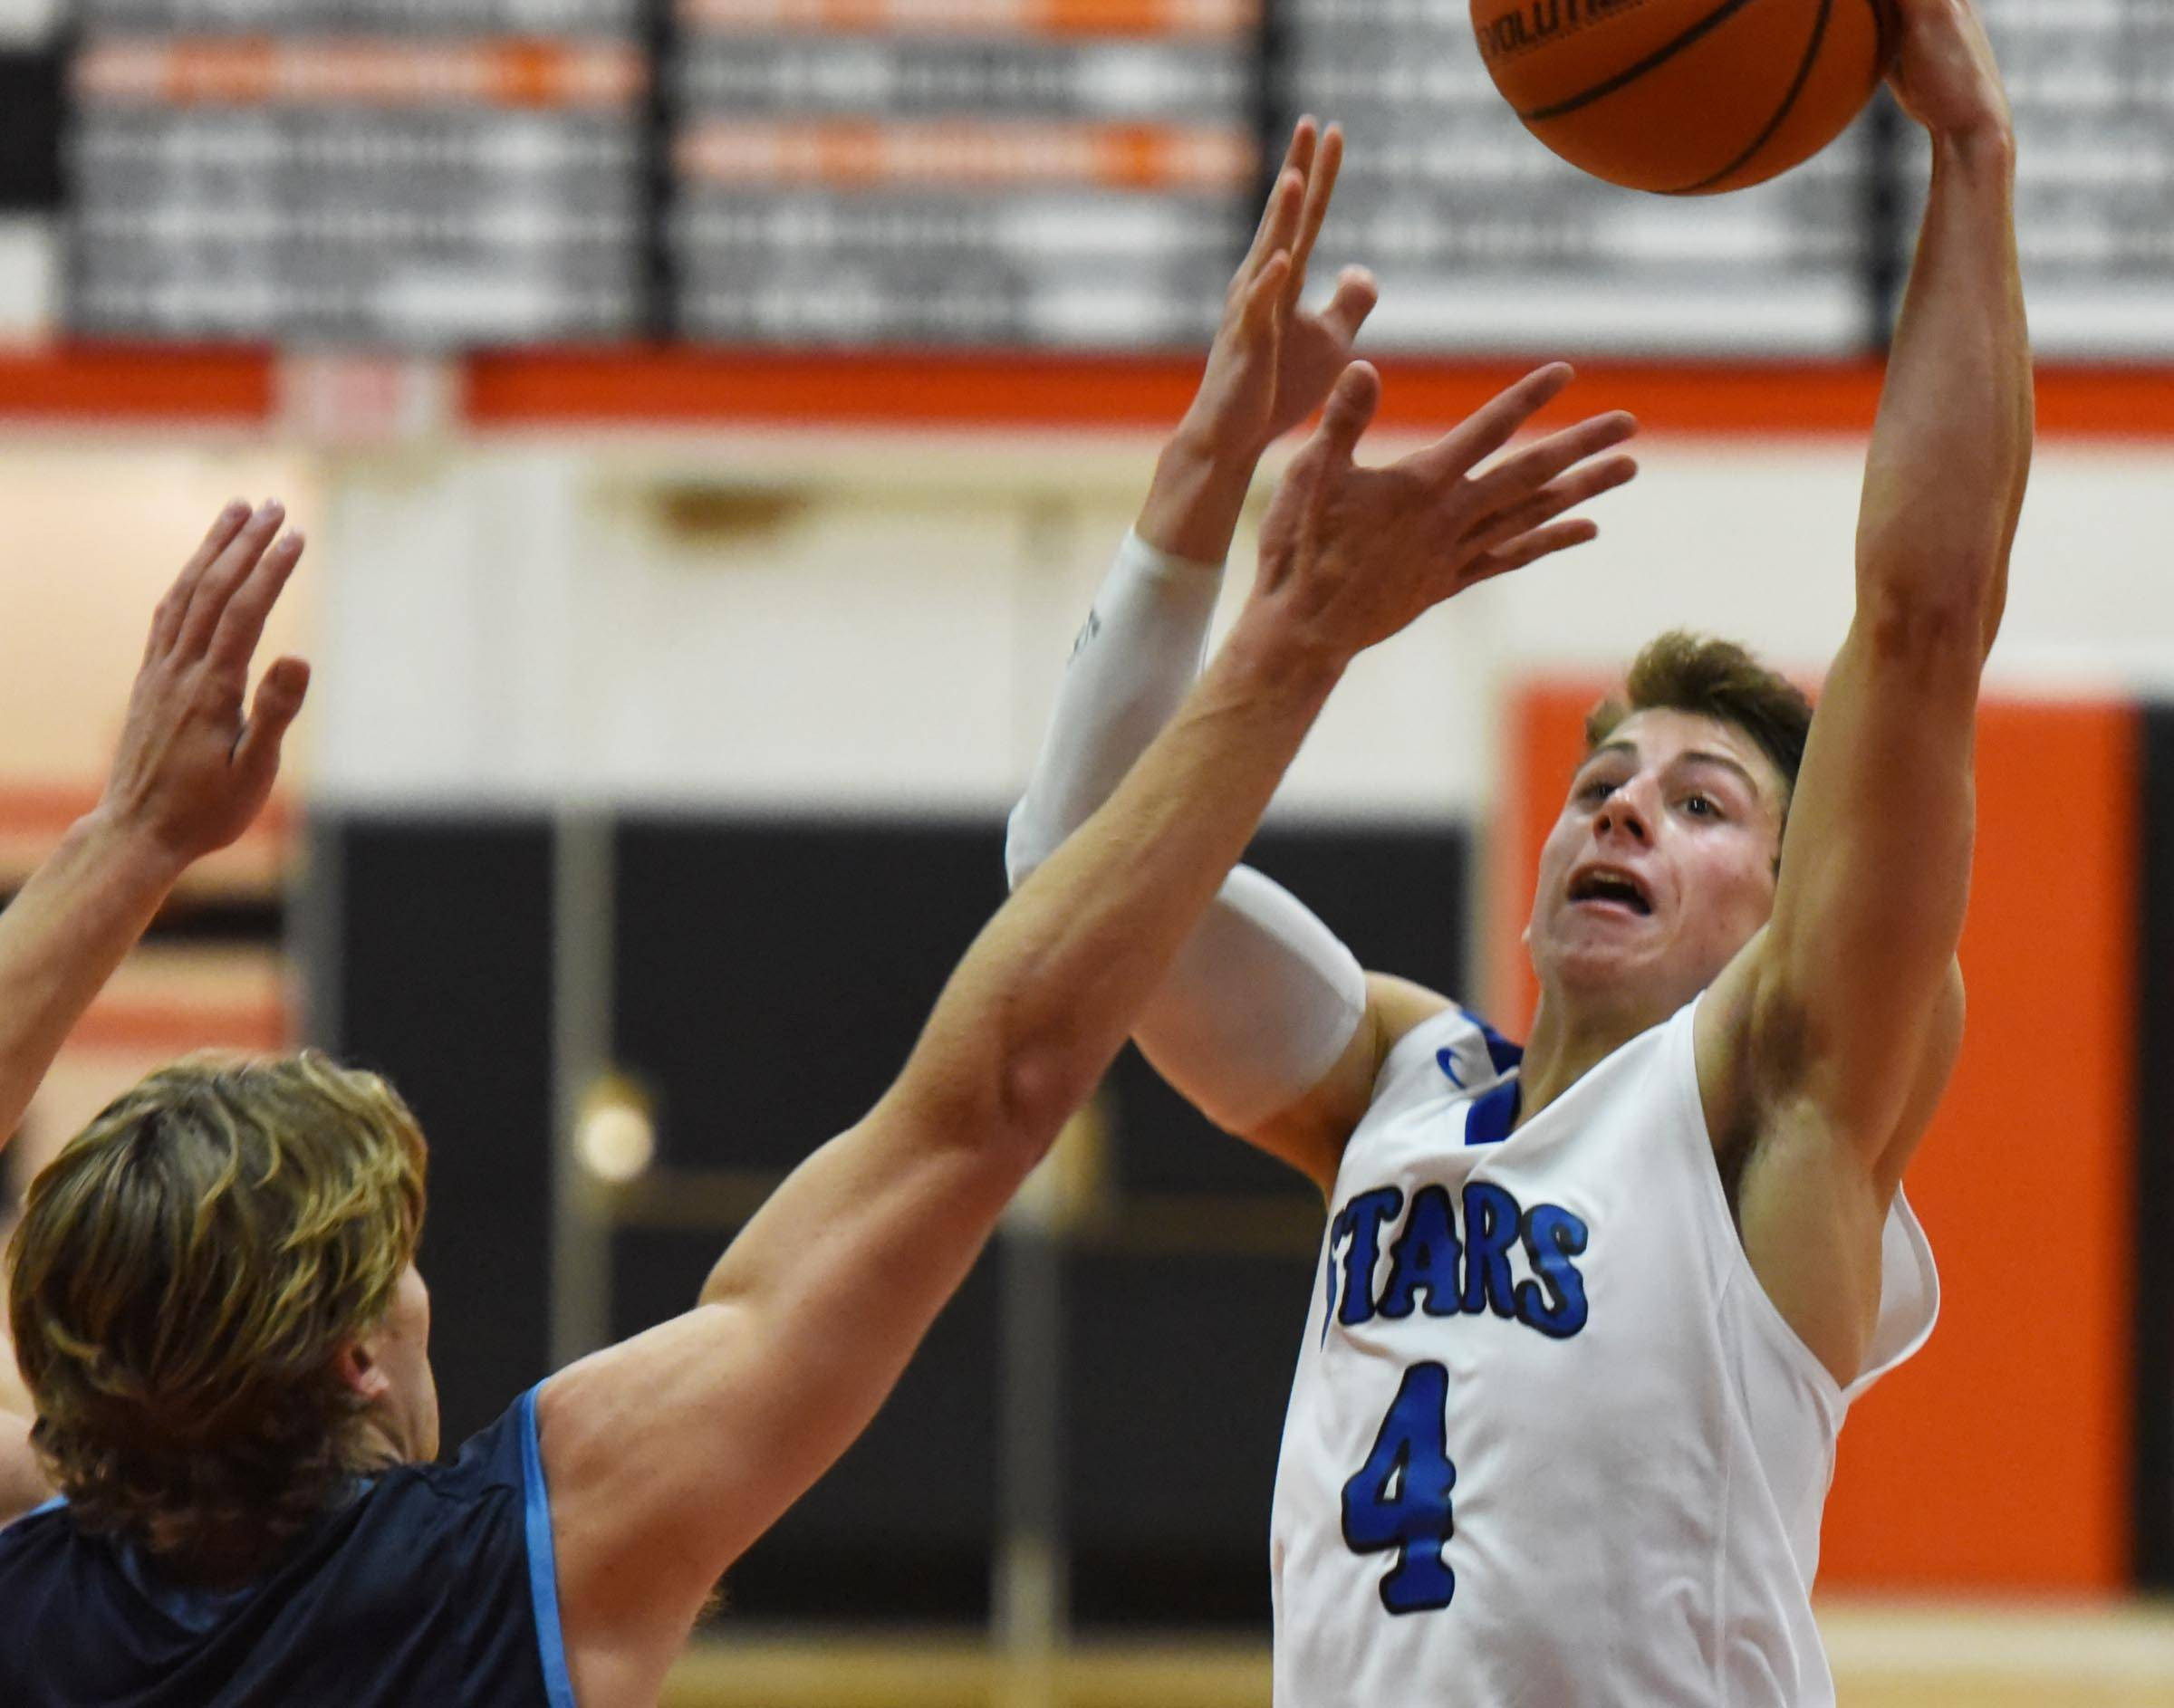 St. Charles North's Anthony Delisi shoots over Downers Grove South's Tj Clifford Friday at the 58th Ron Johnson Boys Basketball Tournament at St. Charles East earlier this season. SCN travels to the powerful Pontiac Holiday Tournament the week after Christmas.